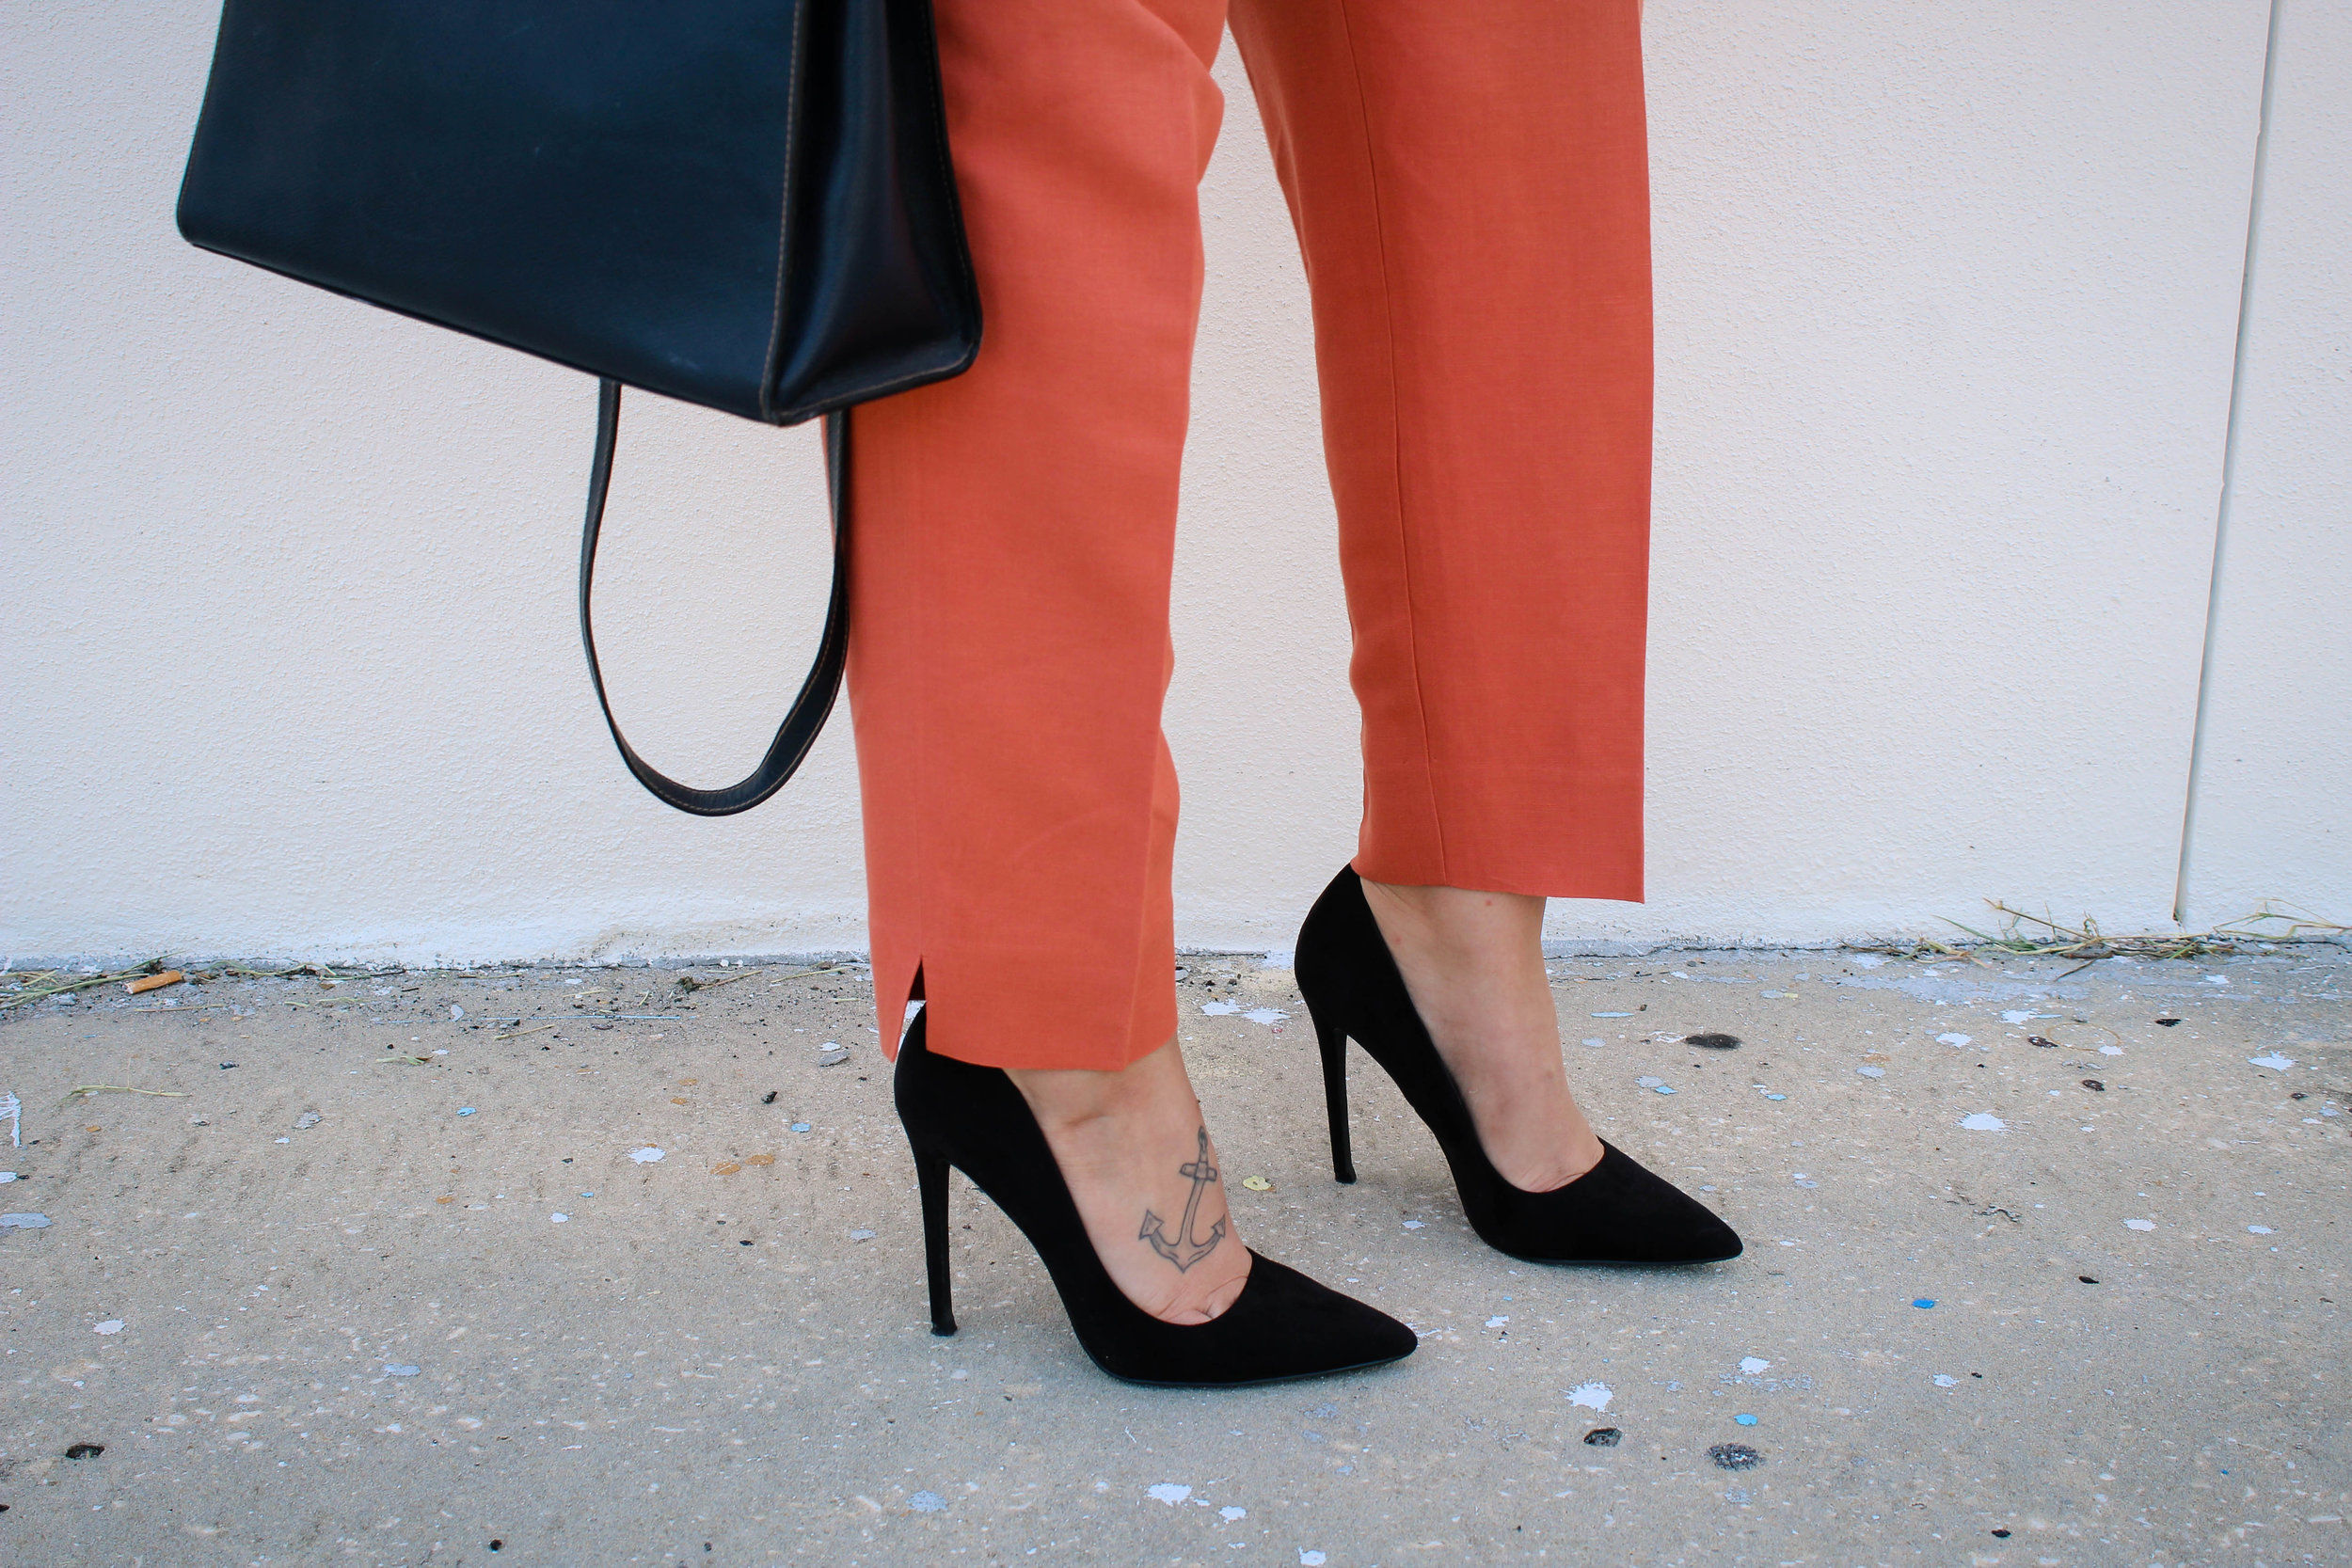 howtostyletrousers-13.jpg